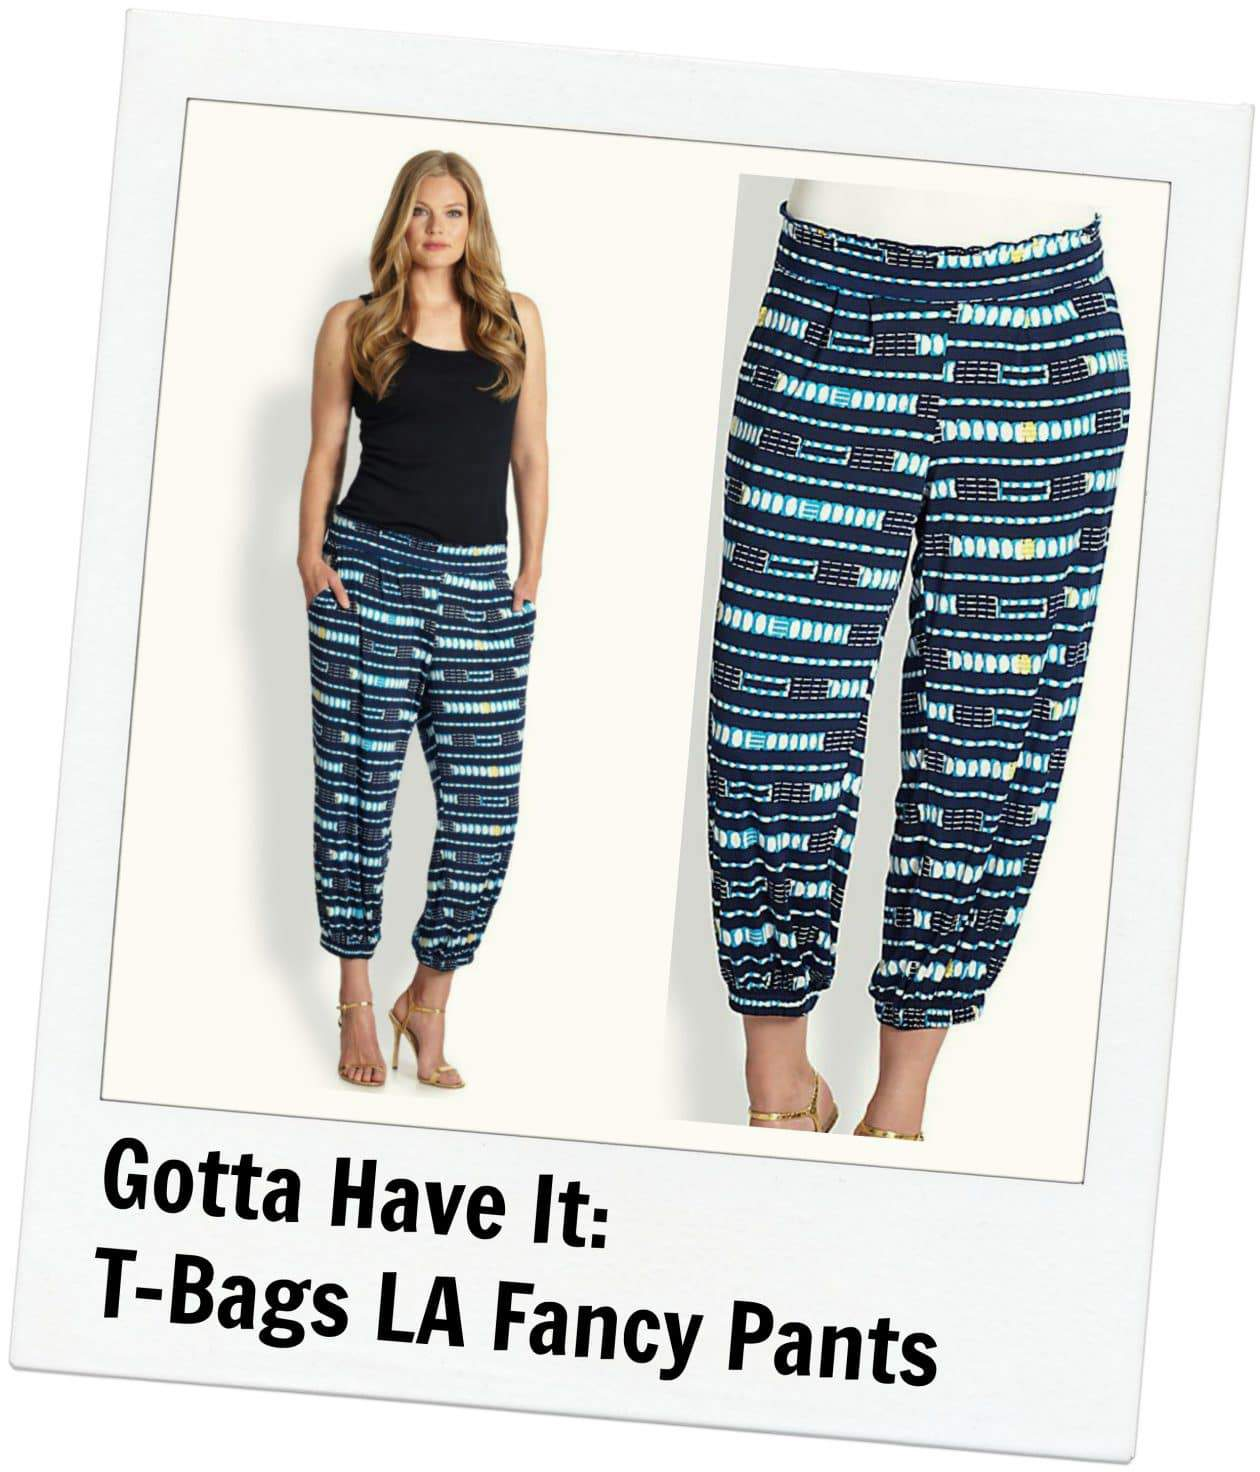 Gotta Have It: T BAGS LA Plus size patterned ankle pants